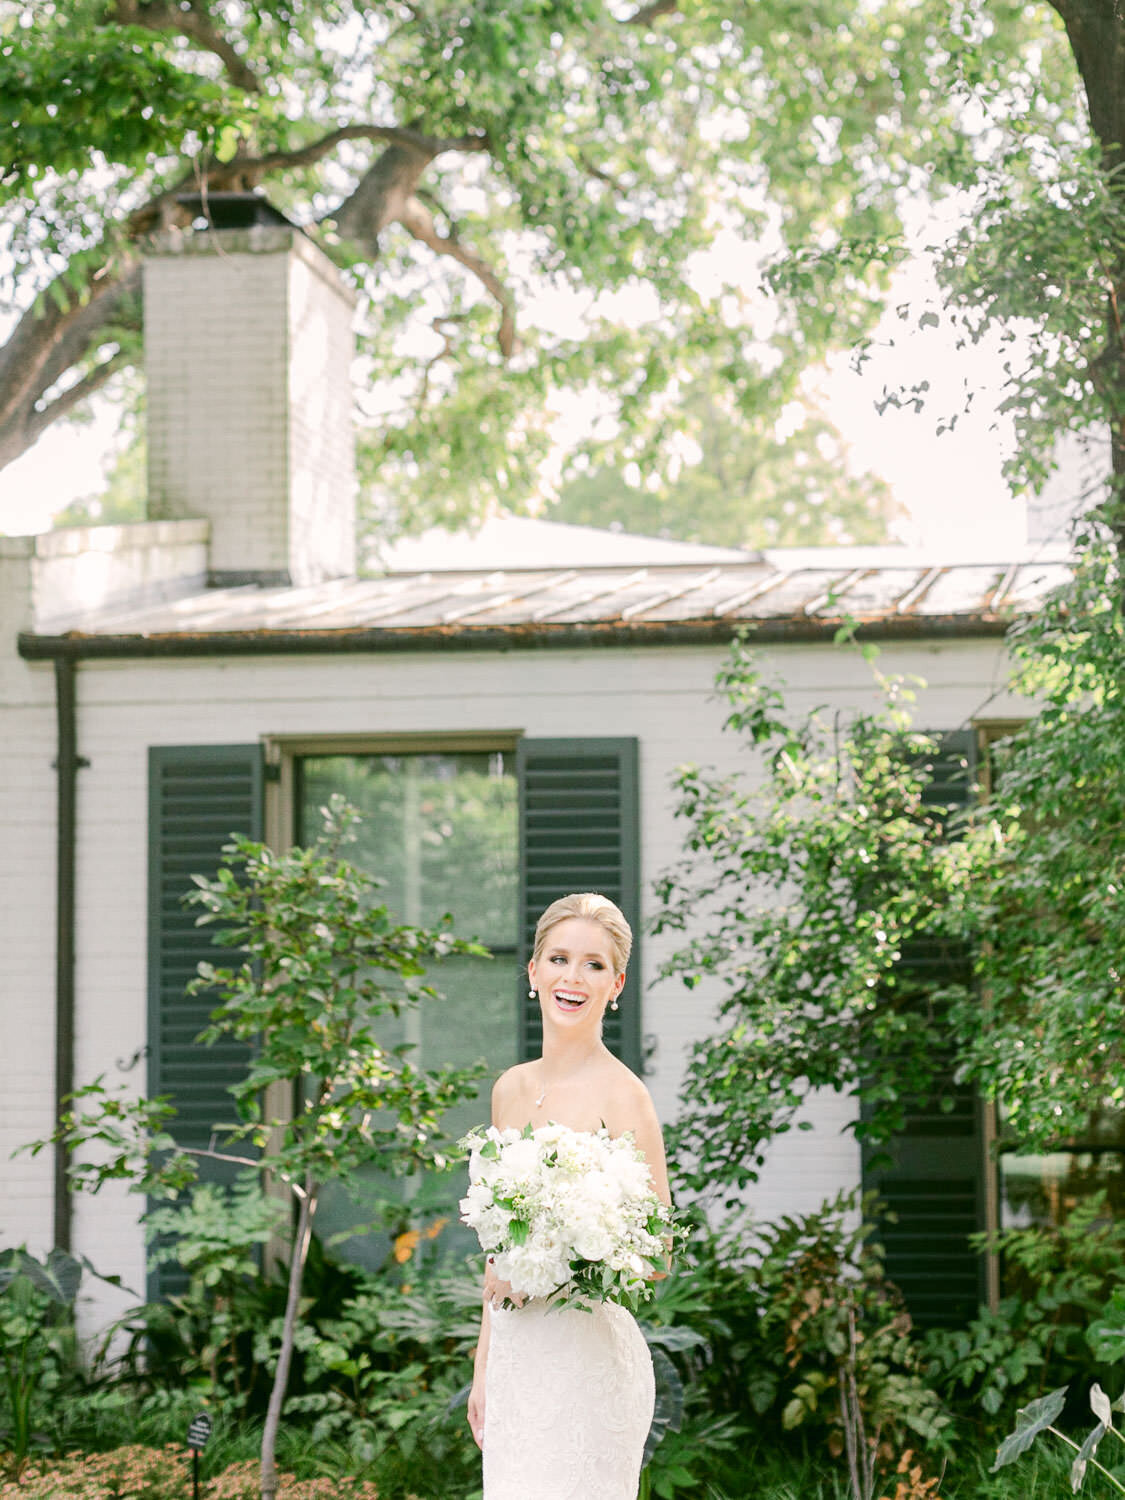 Bride holding white bouquet laughing in front of building with greenery at Dallas Arboretum Wedding